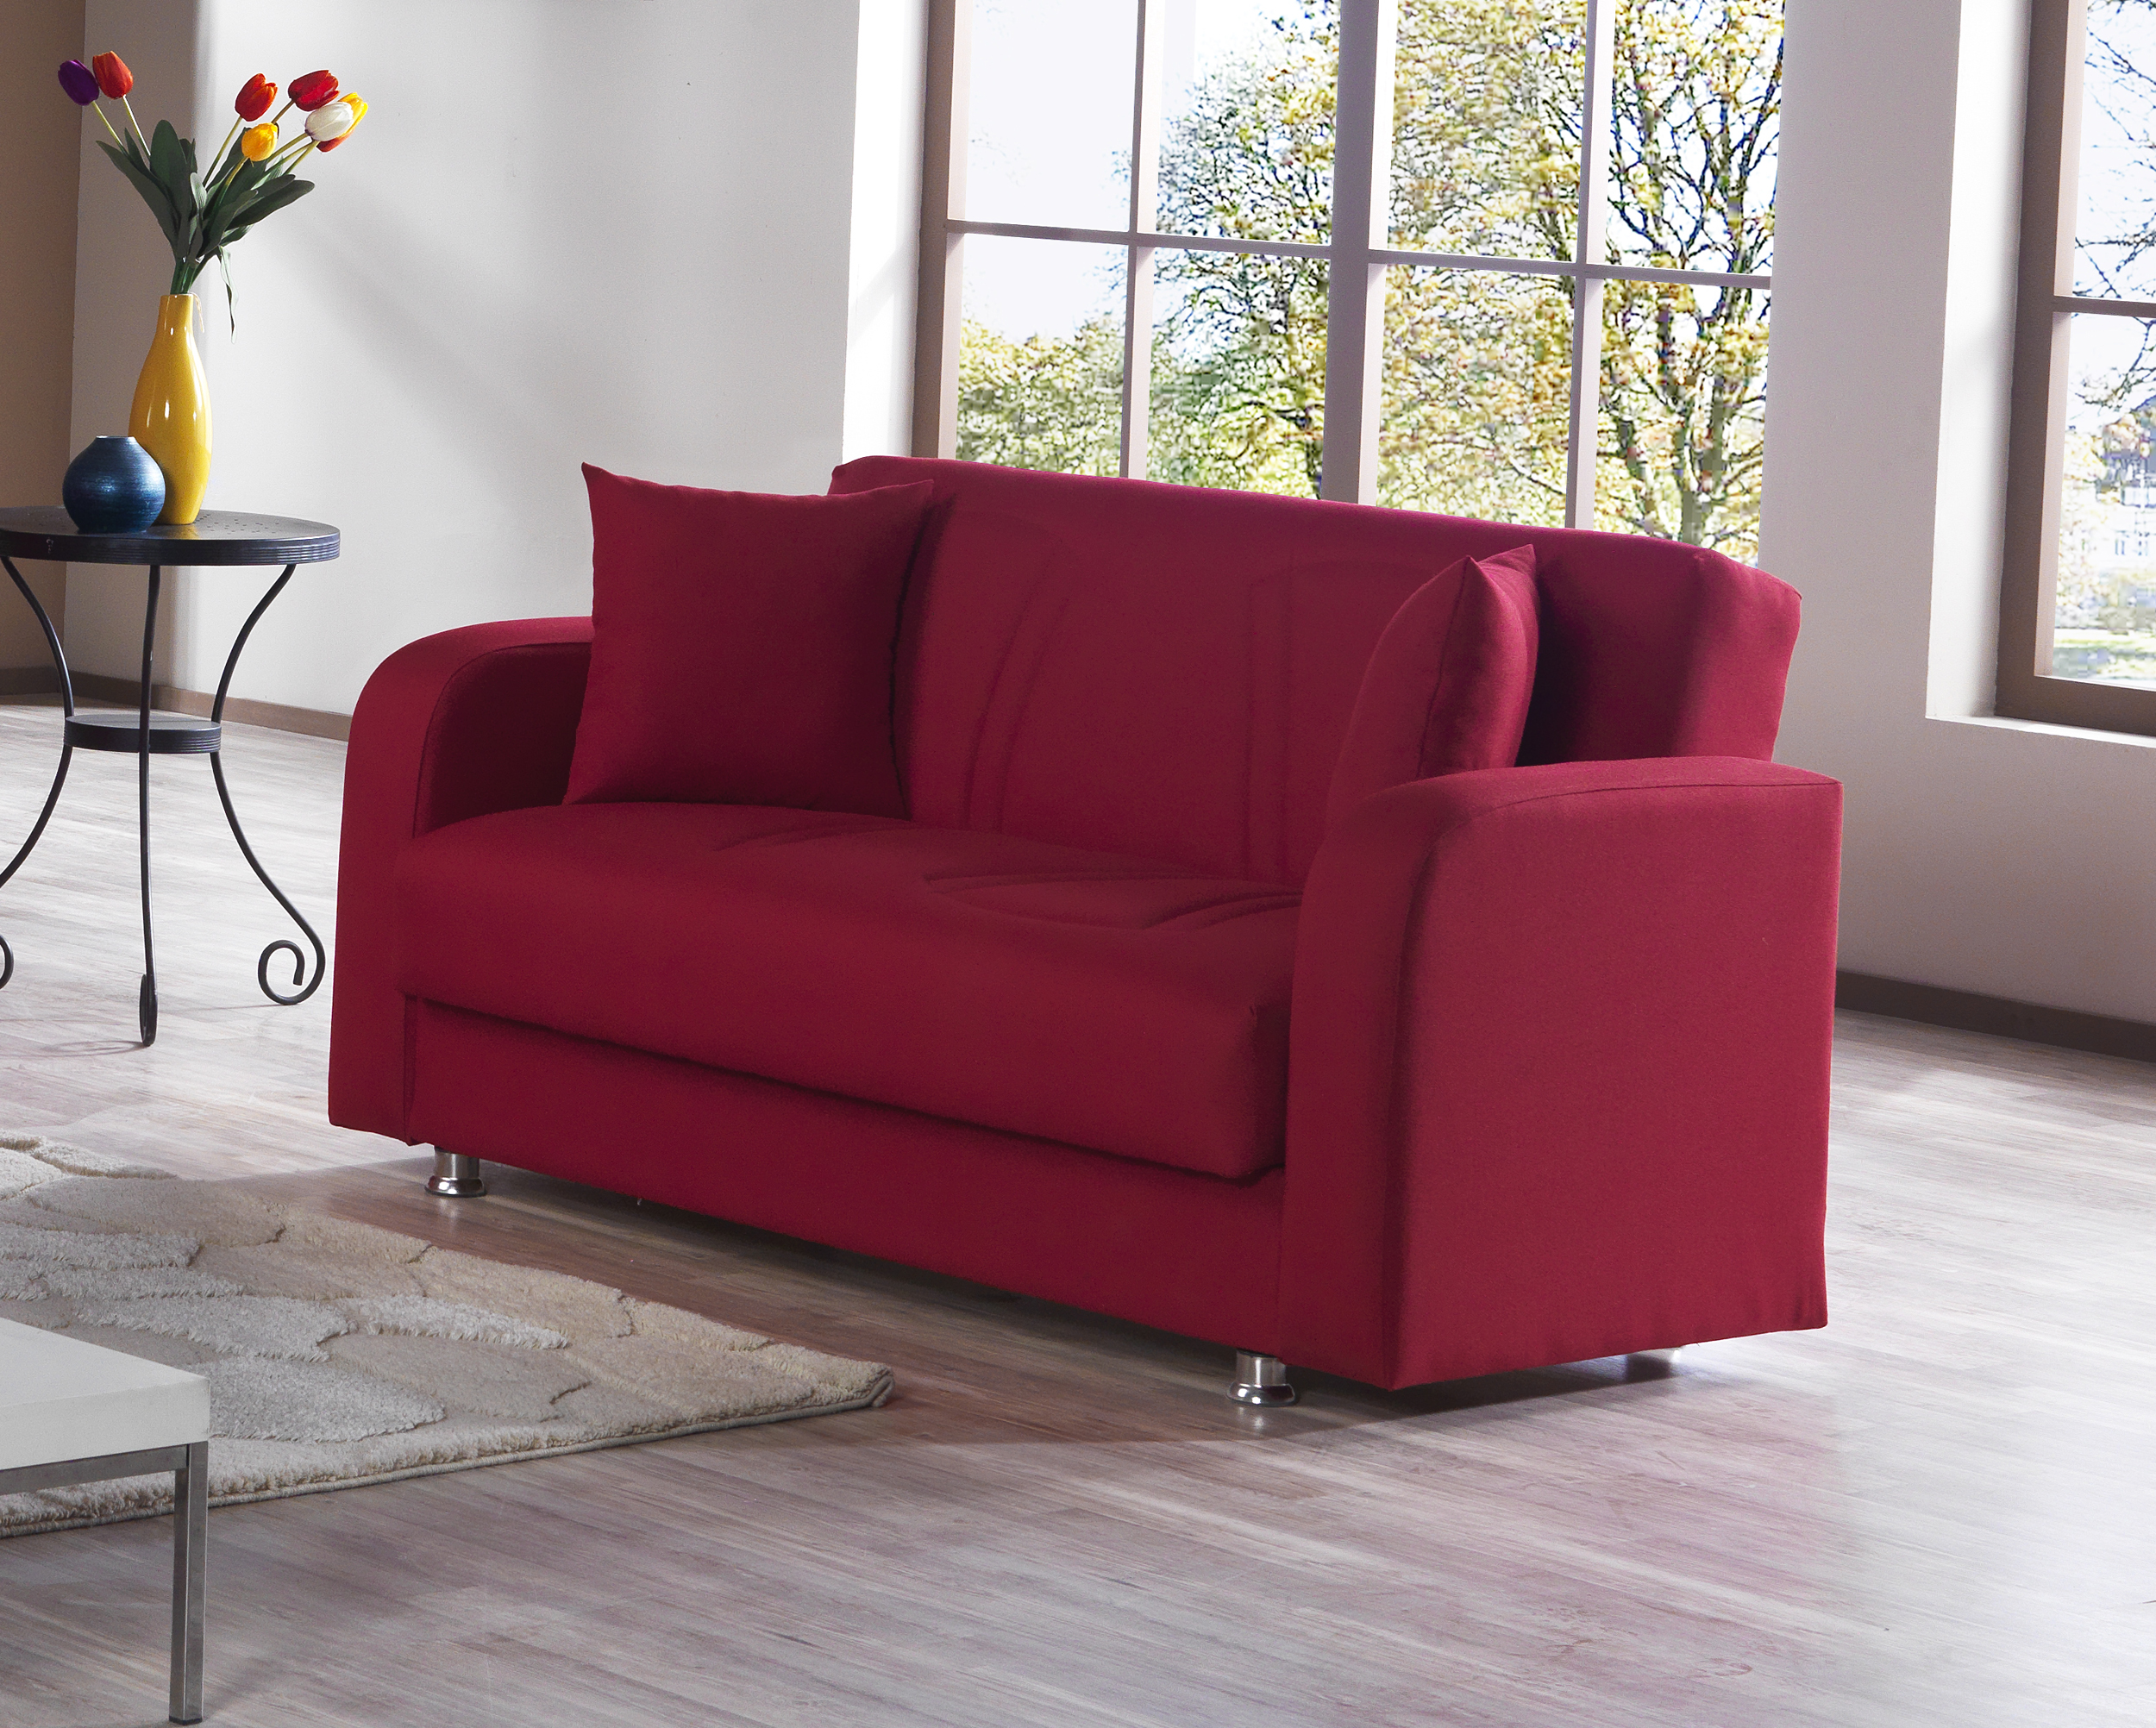 promo code 6ae3a 42499 Joker Red Convertible Loveseat by Casamode